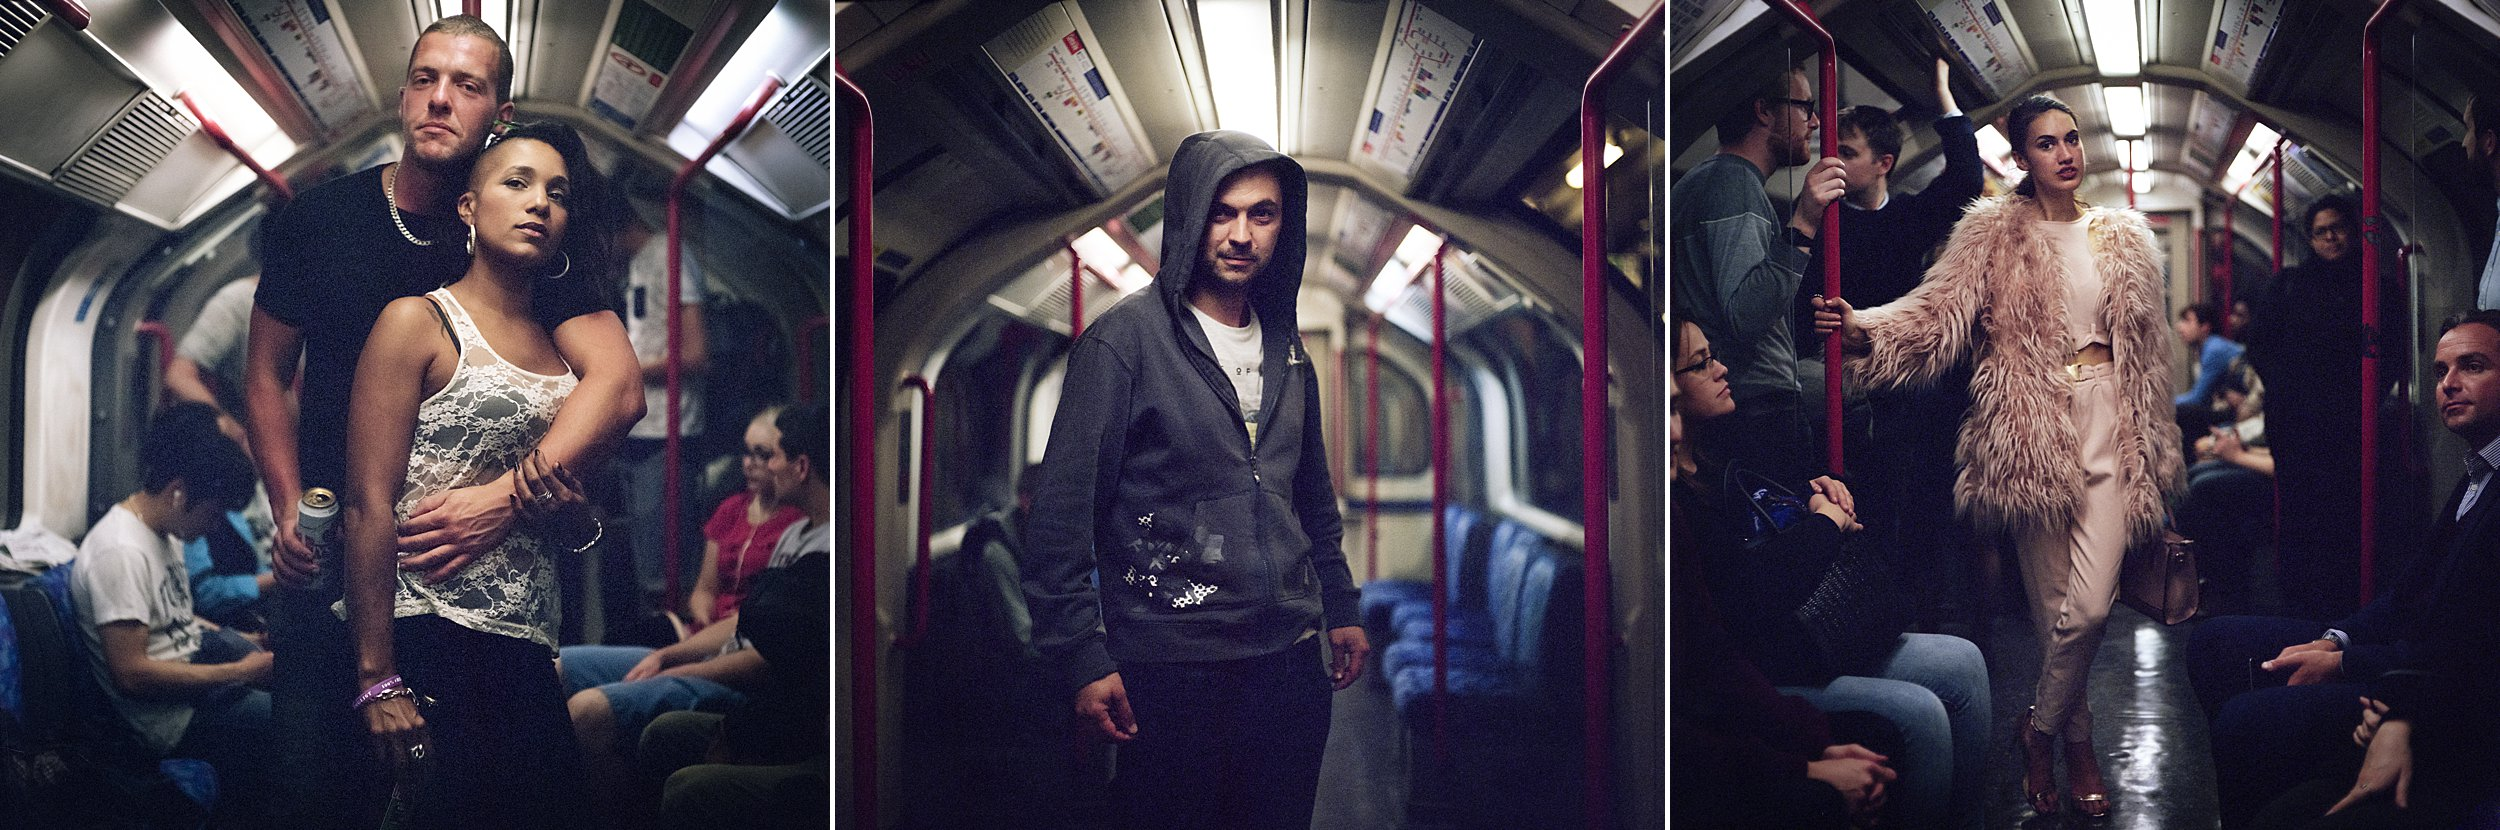 From the Night Tube series… I promise I won't make you look this serious.